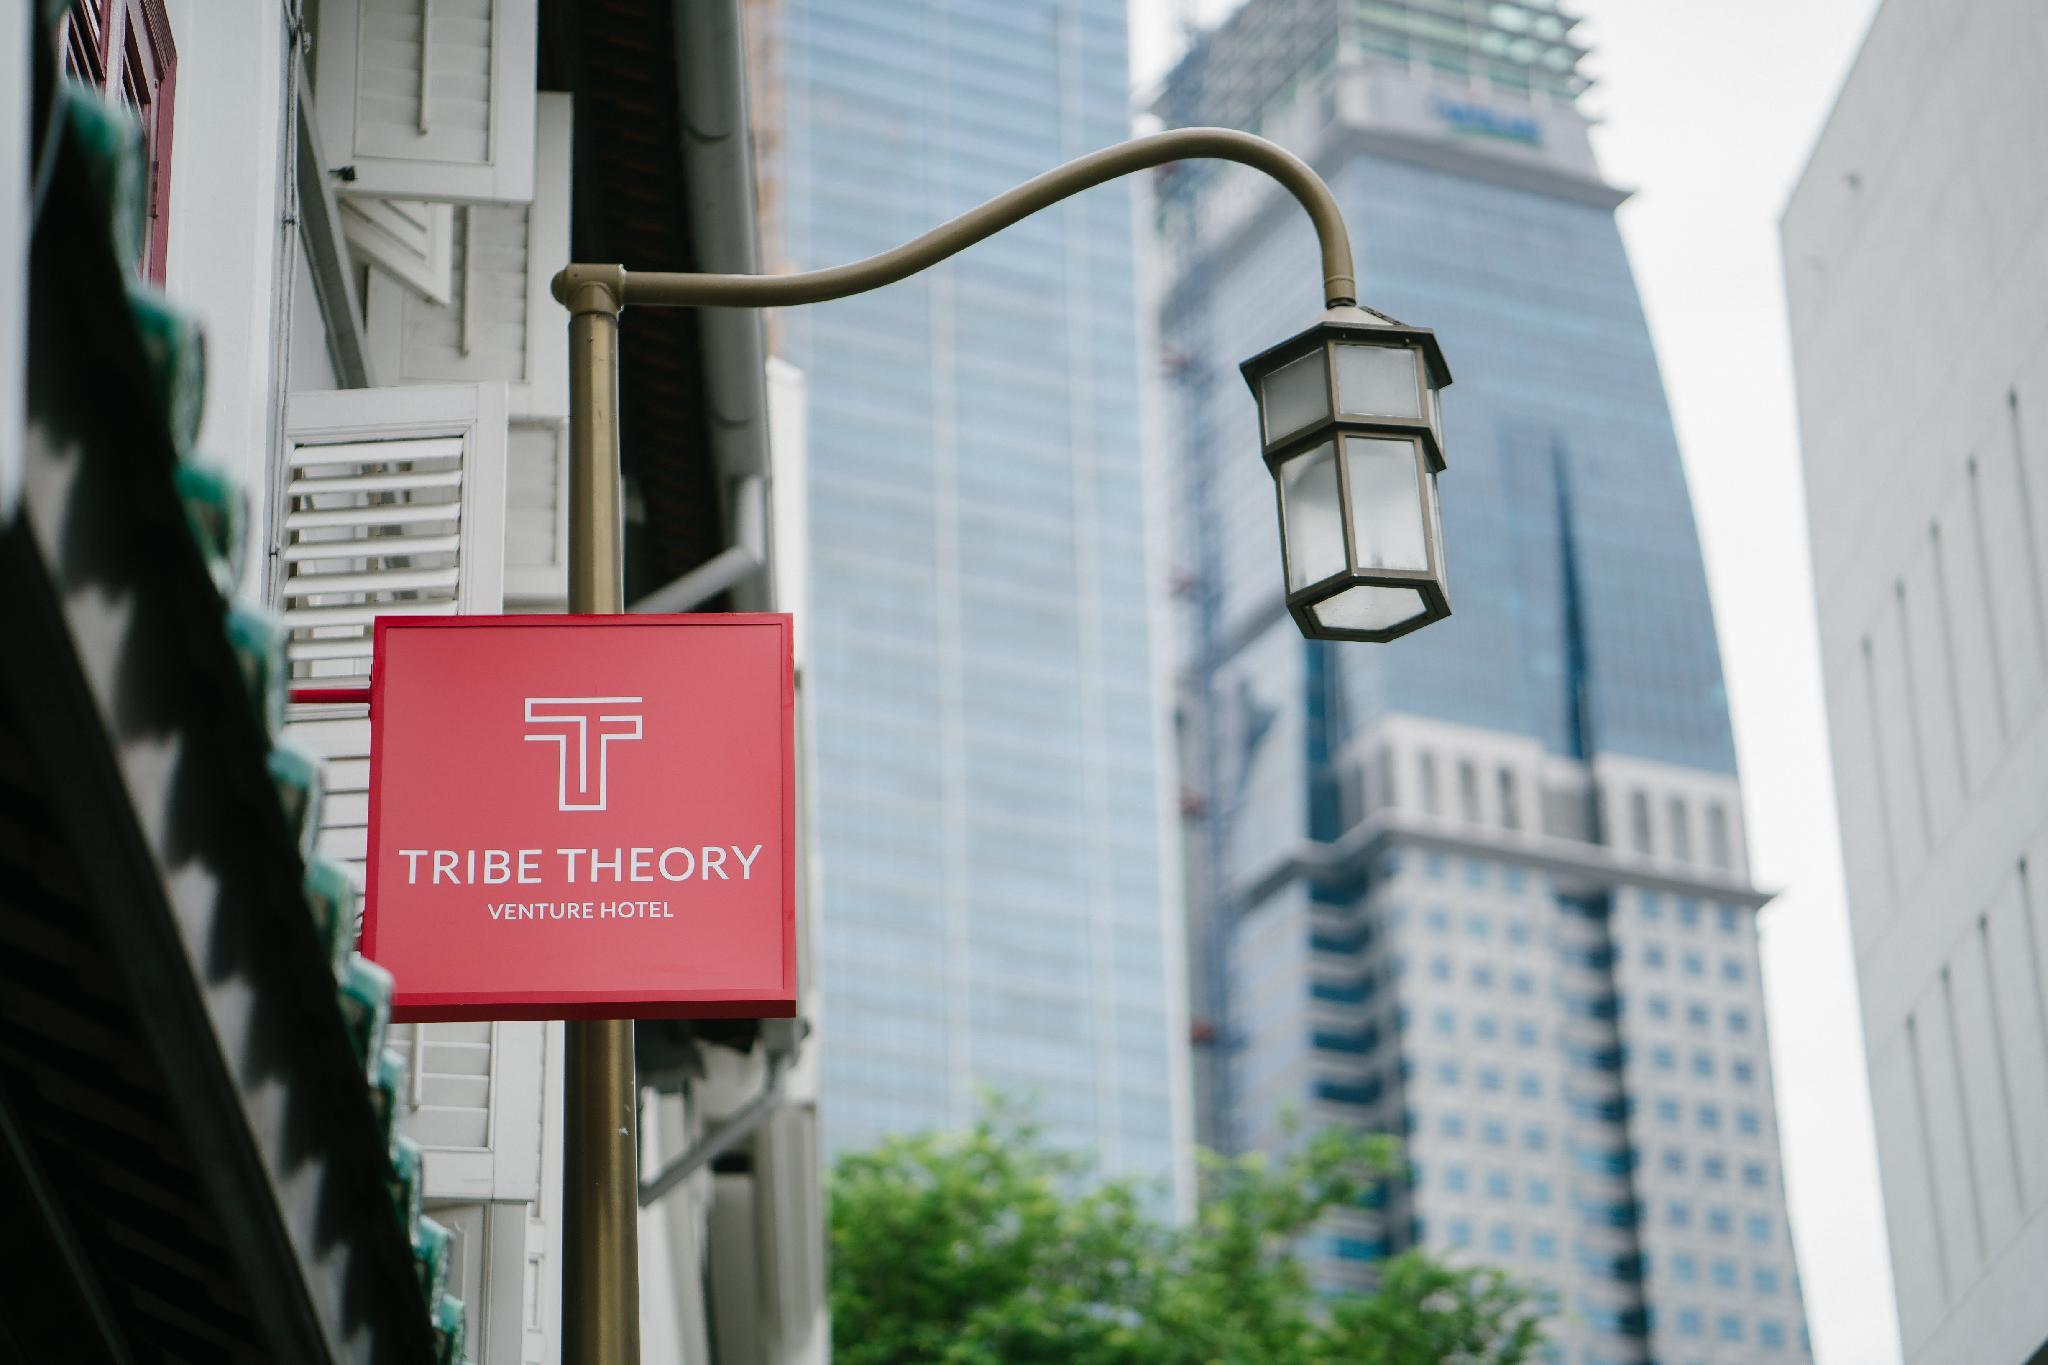 TRIBE THEORY – Entrepreneurs Hostel for Startups and Digital Nomads 4